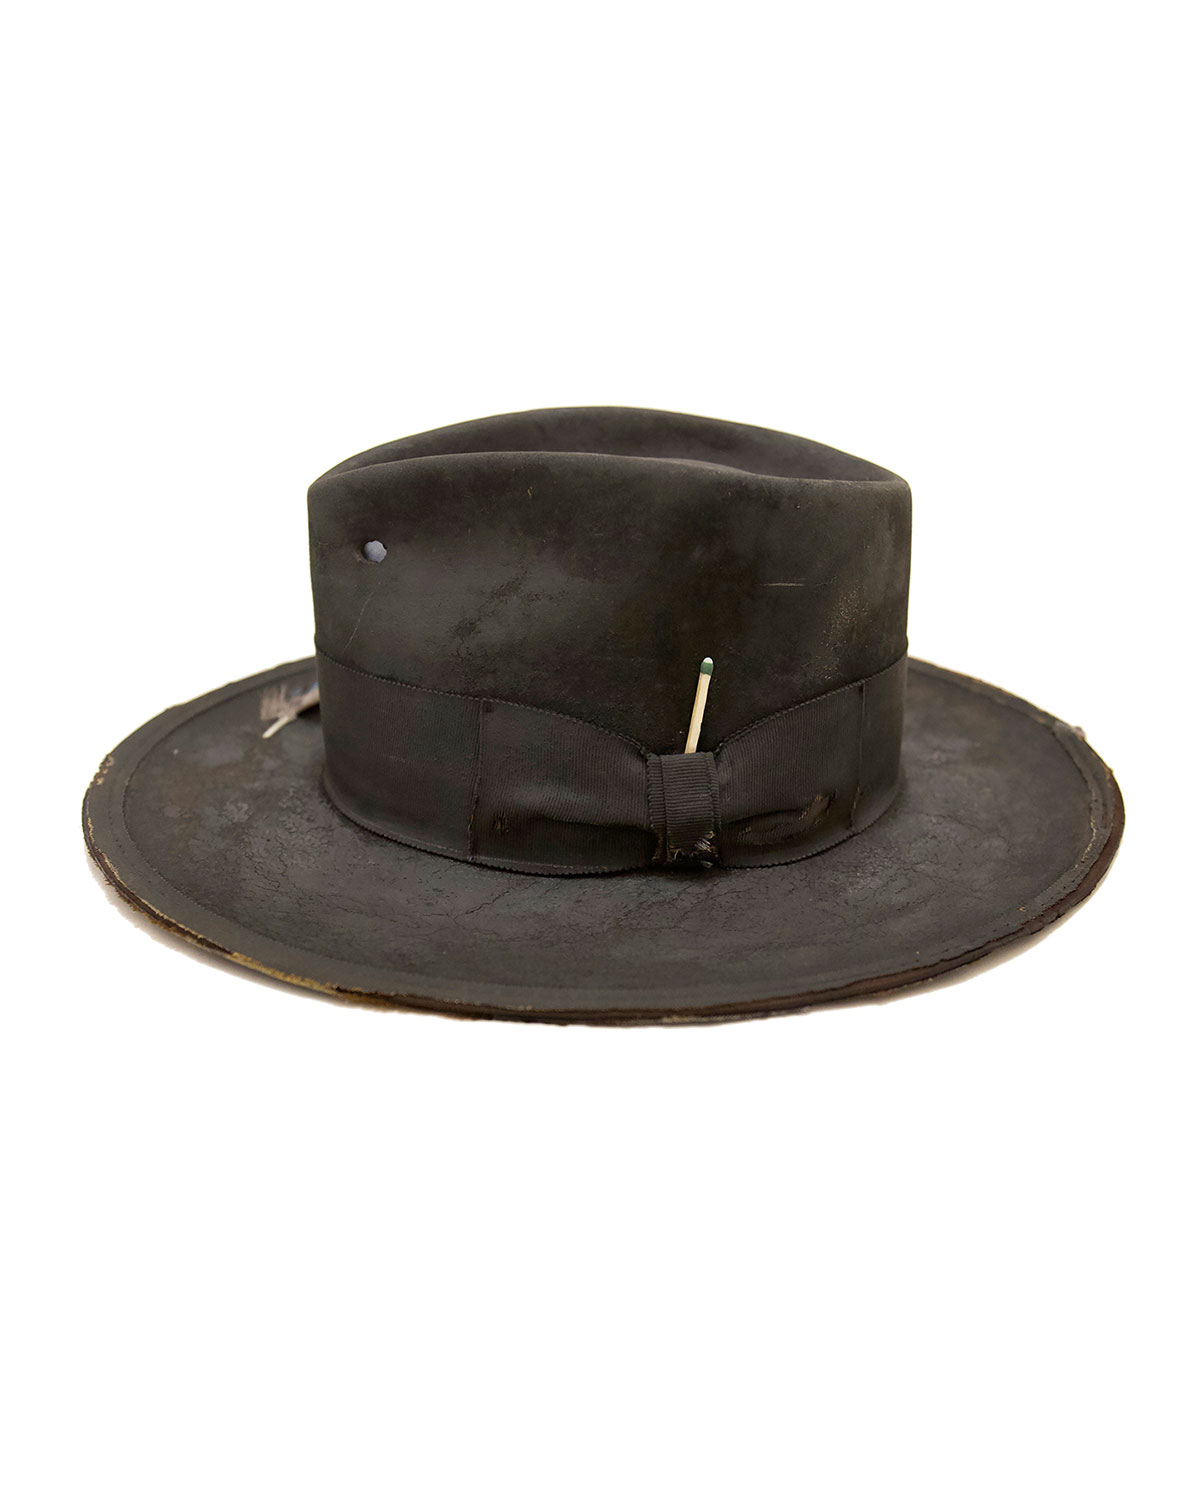 Nick Fouquet Hats THE NORTH END DISTRESSED BEAVER FELT FEDORA HAT